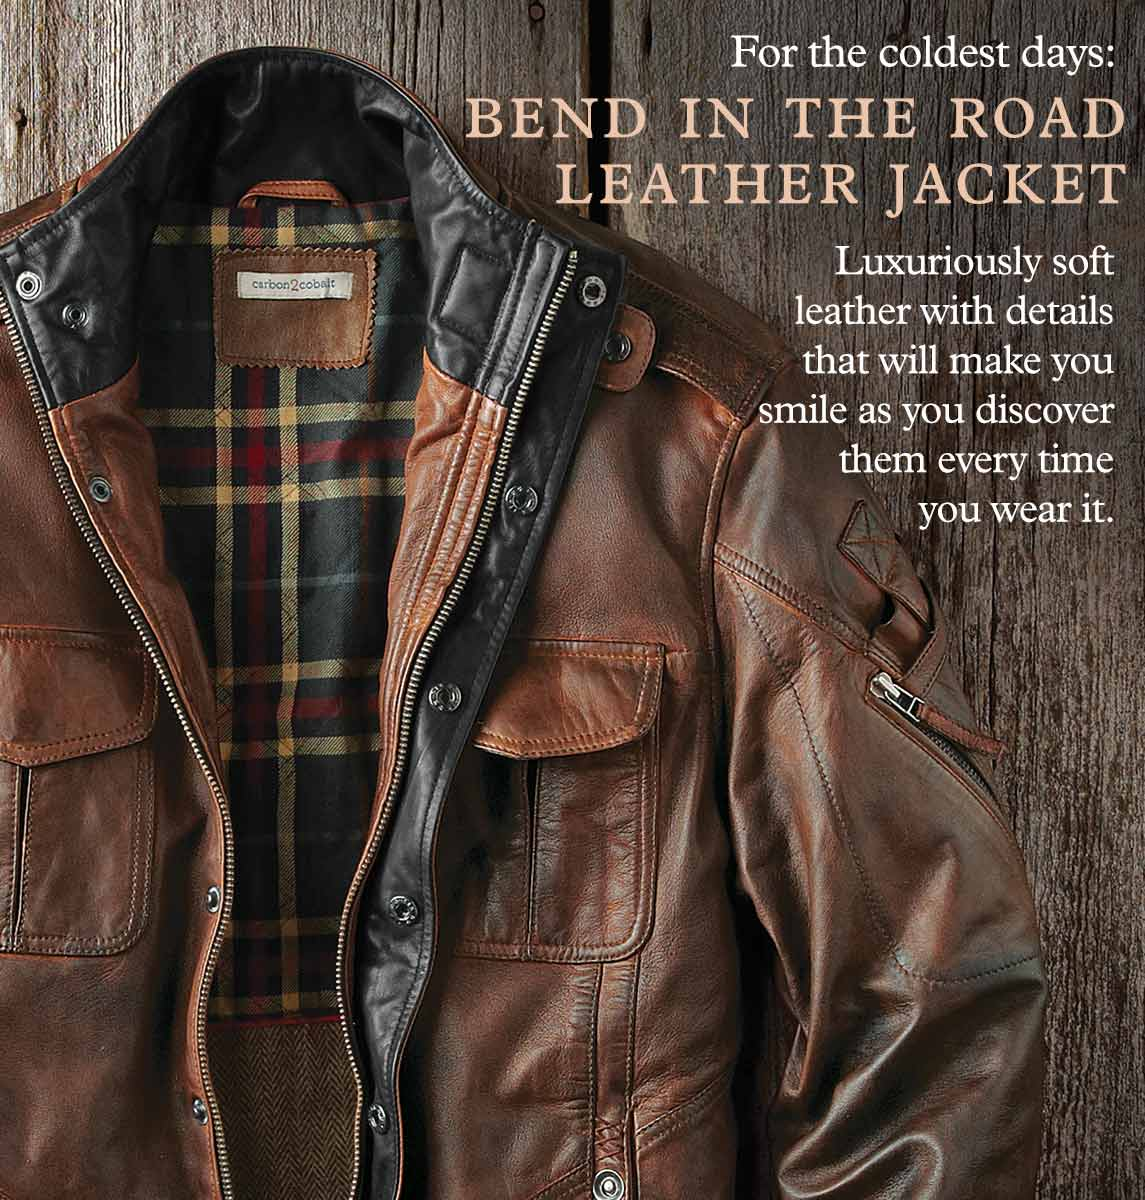 Bend In The Road Leather Jacket